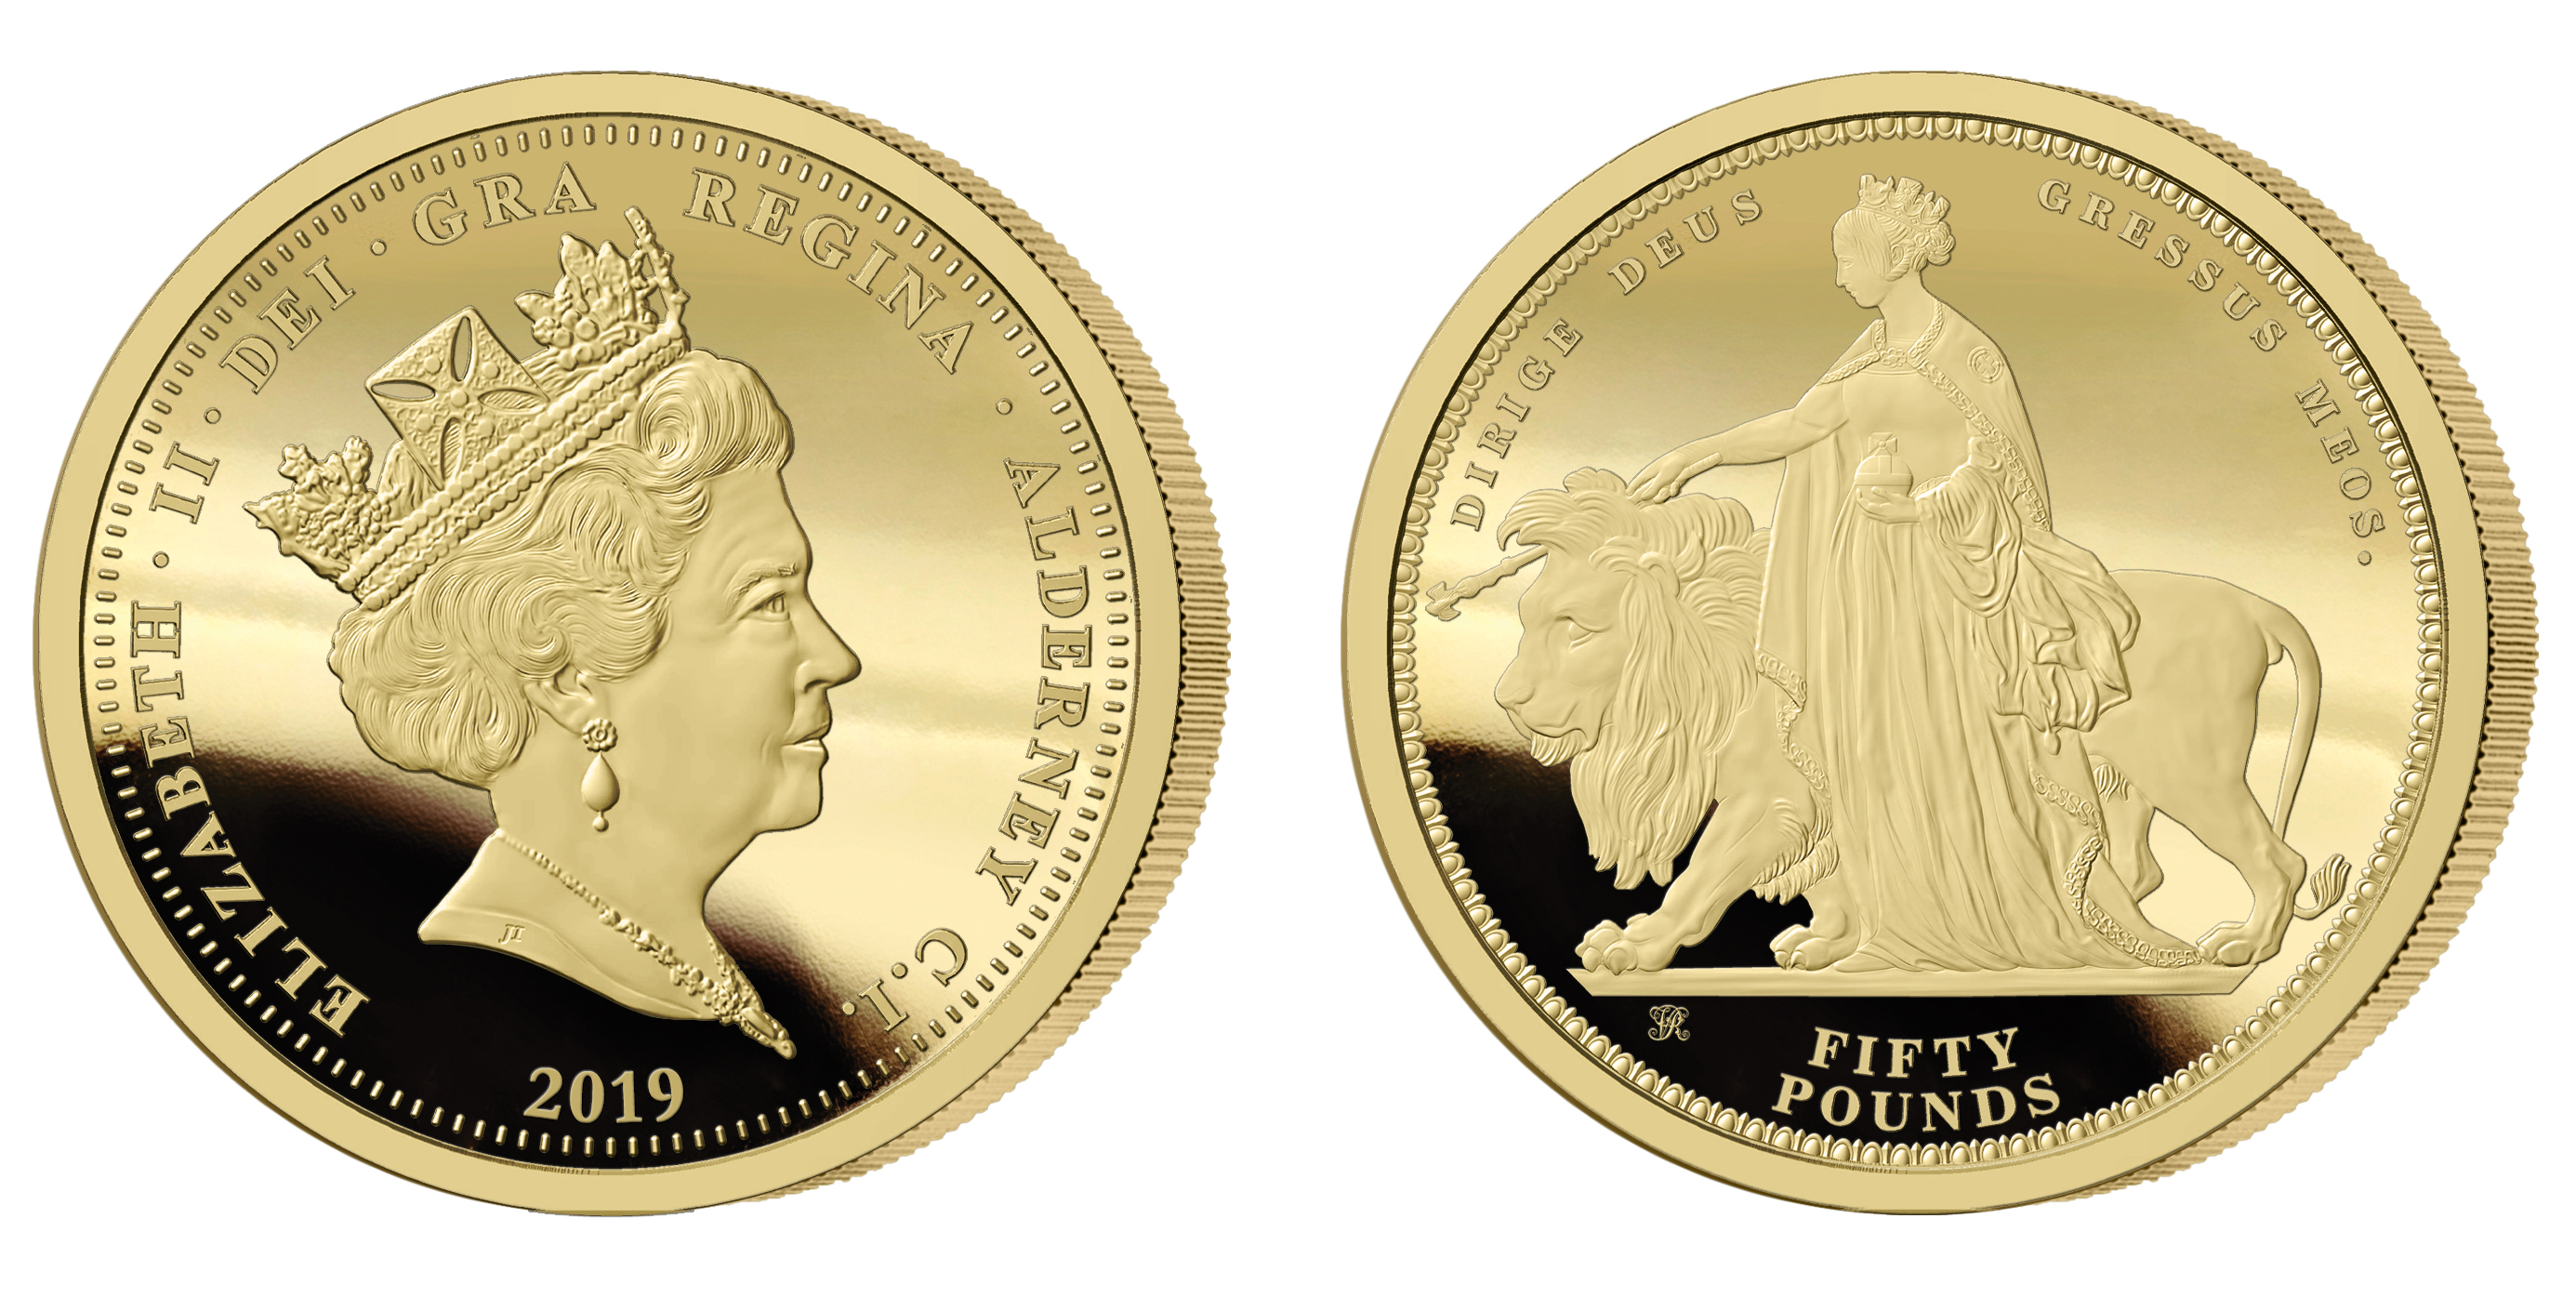 The 2019 Queen Victoria 200th Anniversary 24 Carat Gold £50 Sovereign